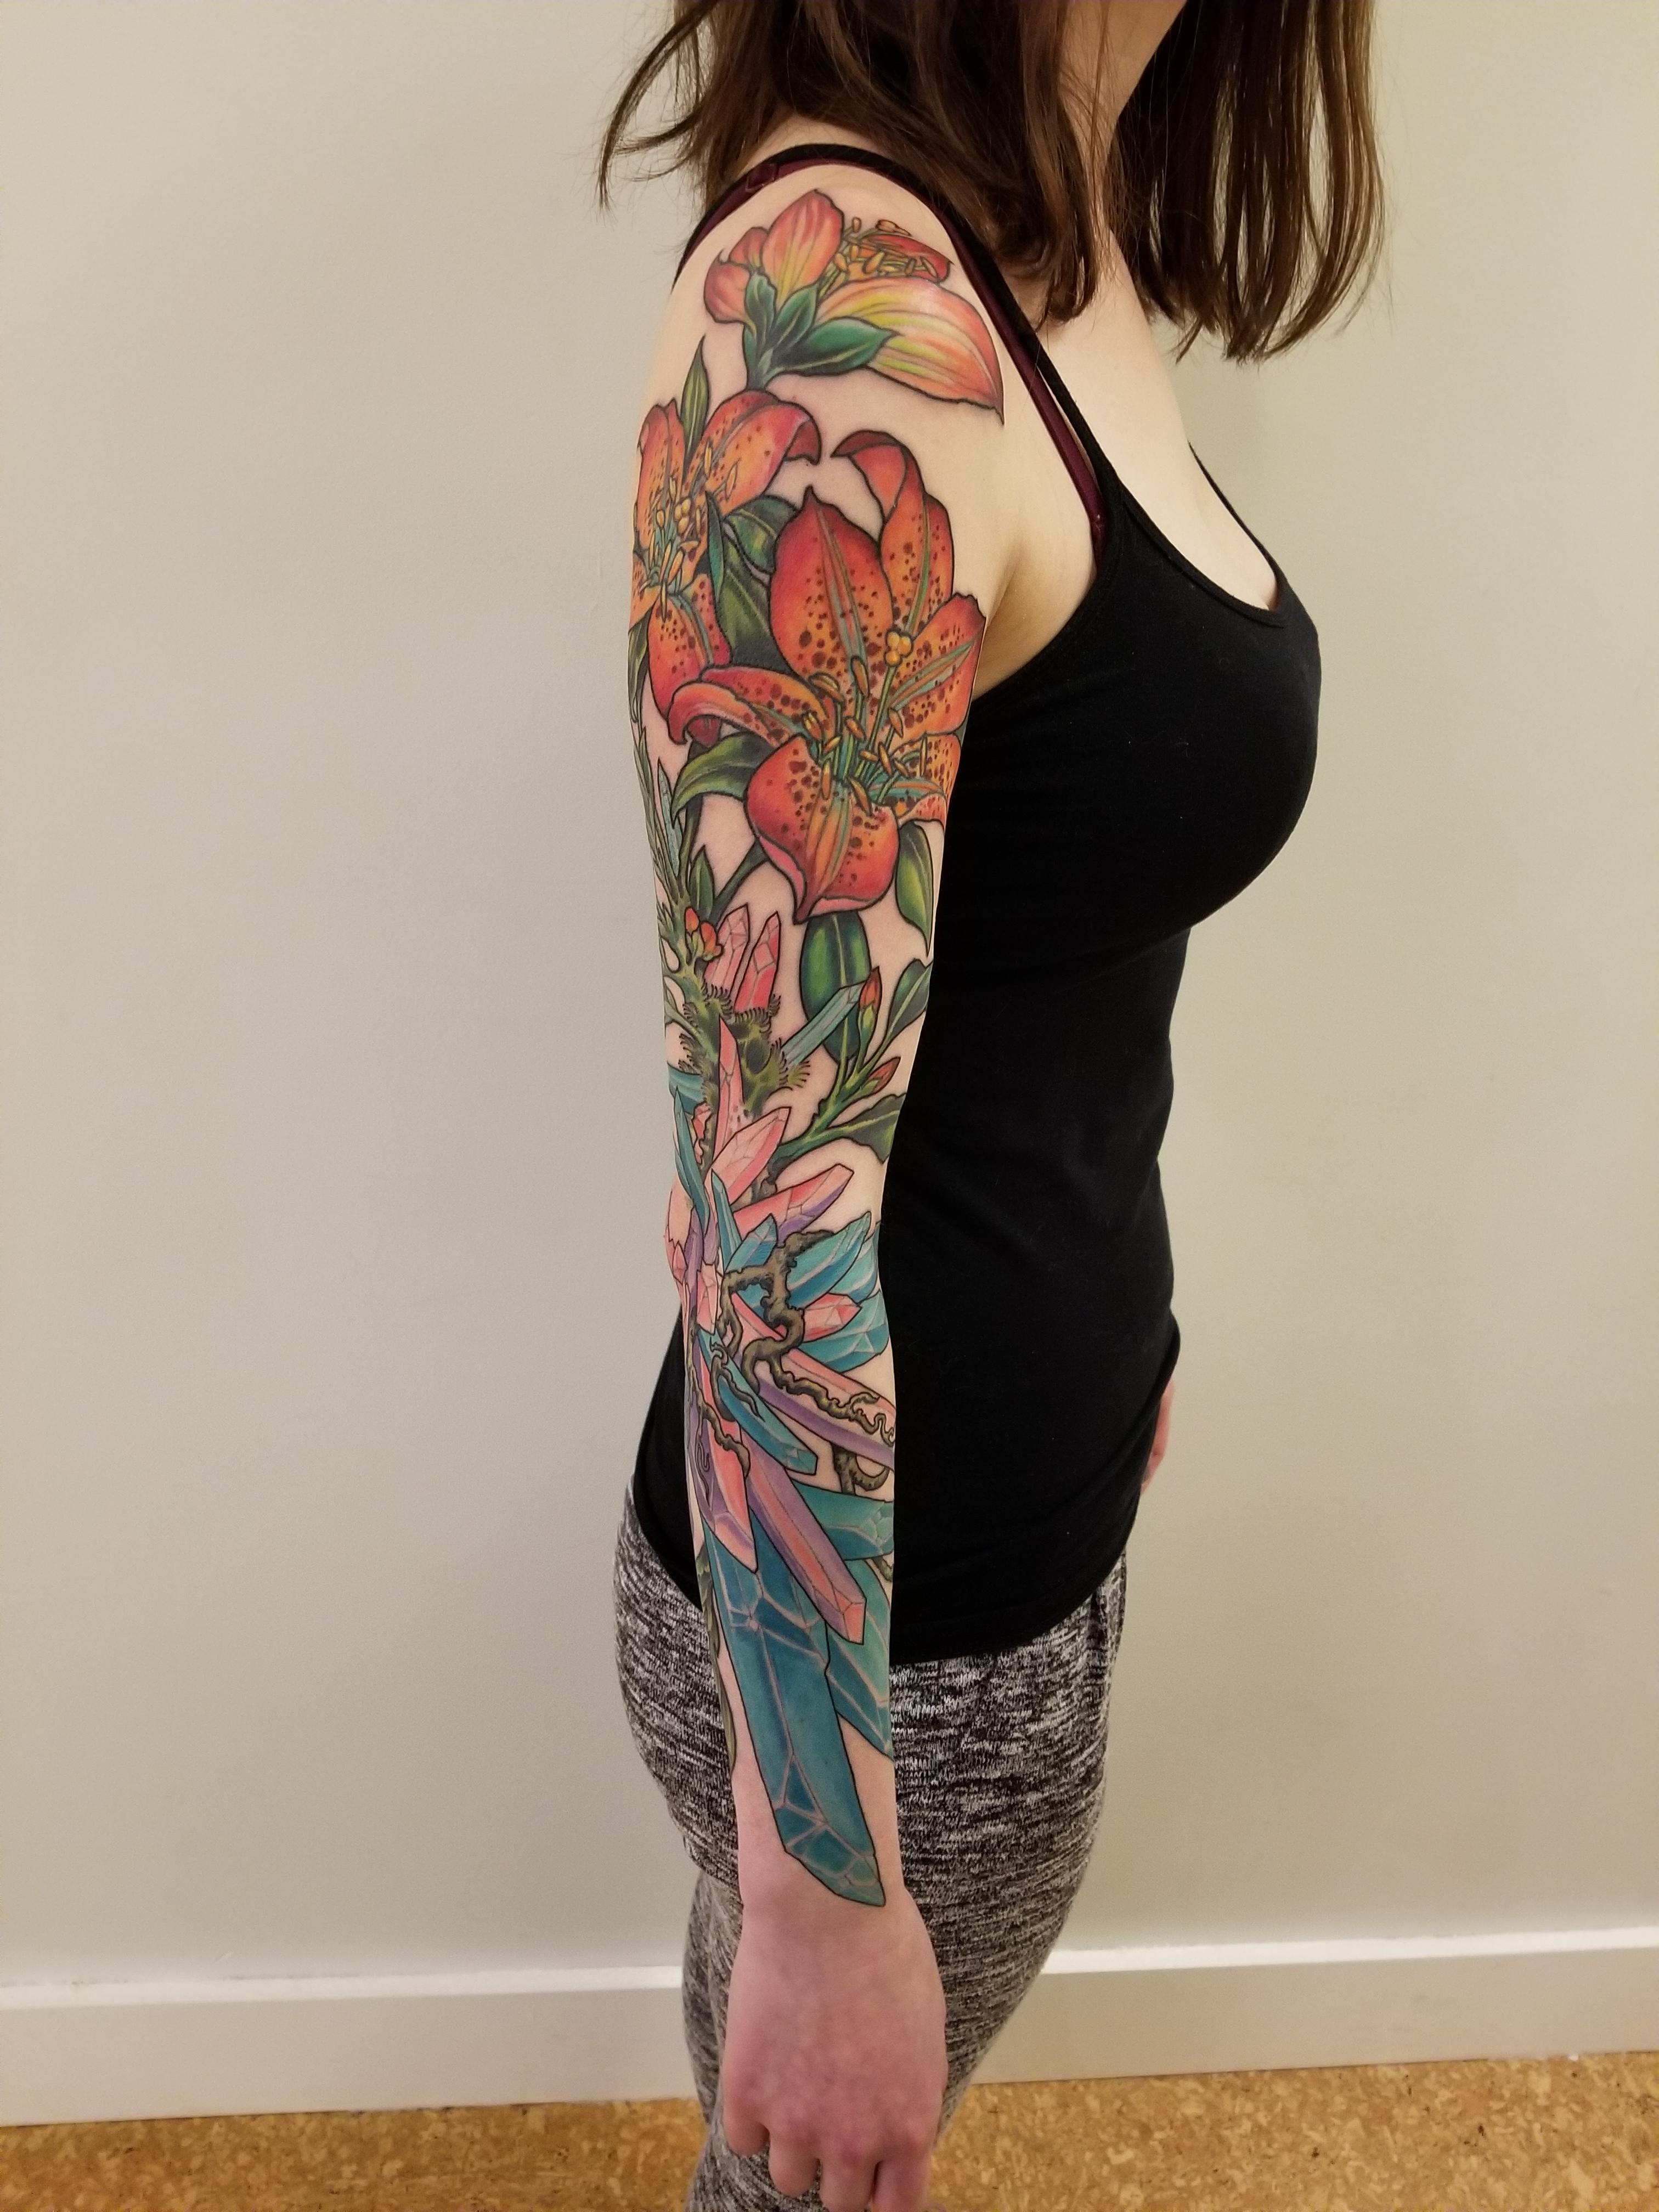 Chrystals And Flowers Be Me Jeff Croci Of 7Th Son Tattoo Ideas And Designs